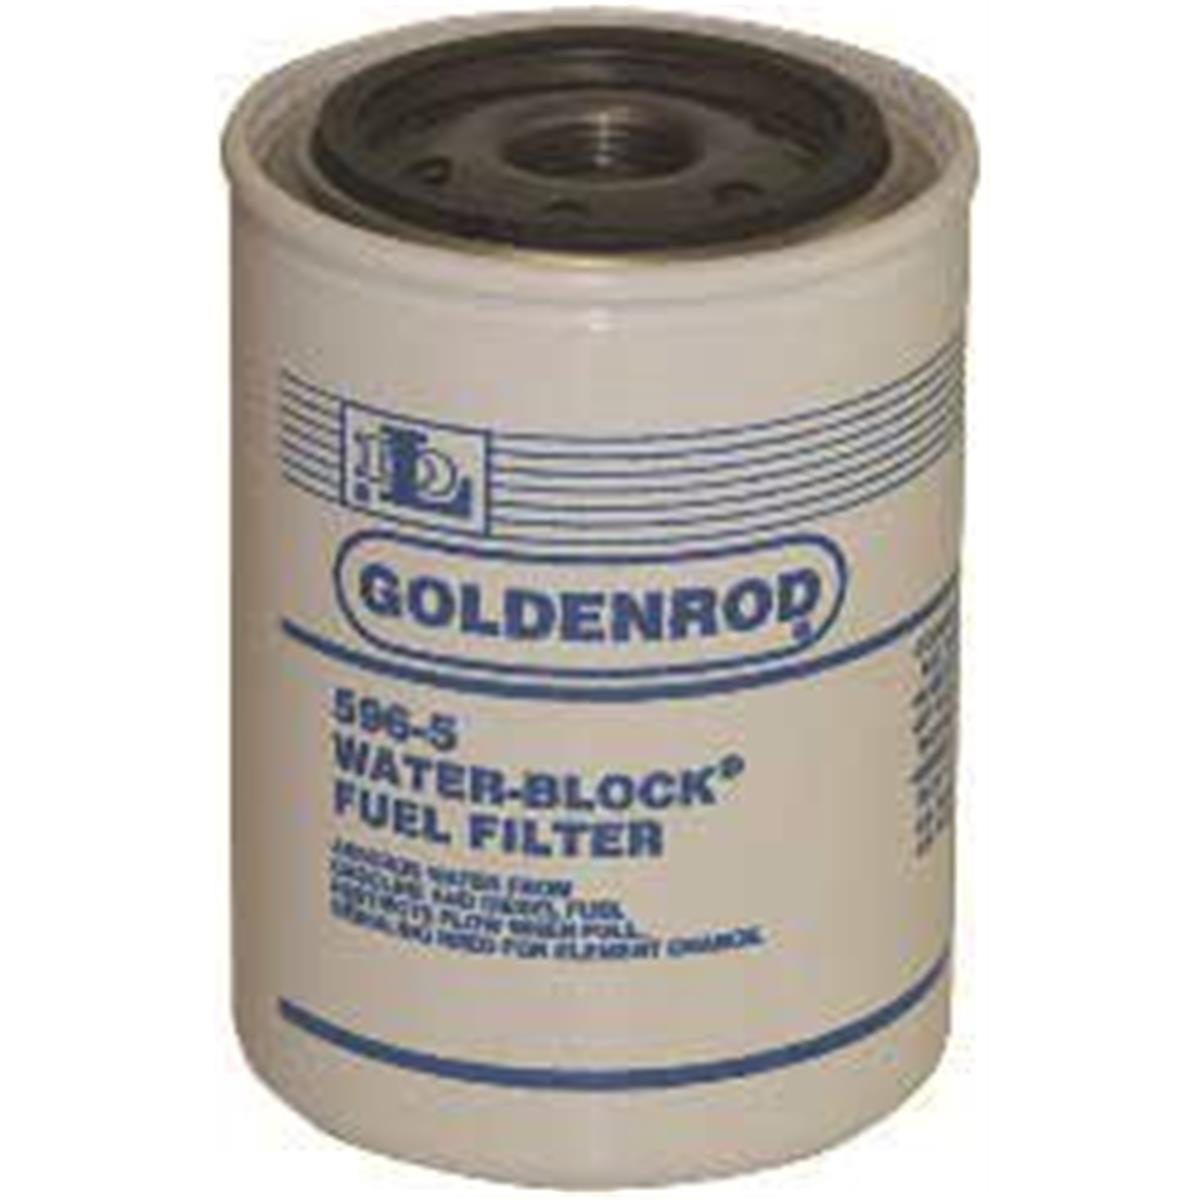 Replacement WATER-BLOCK® Fuel Filter